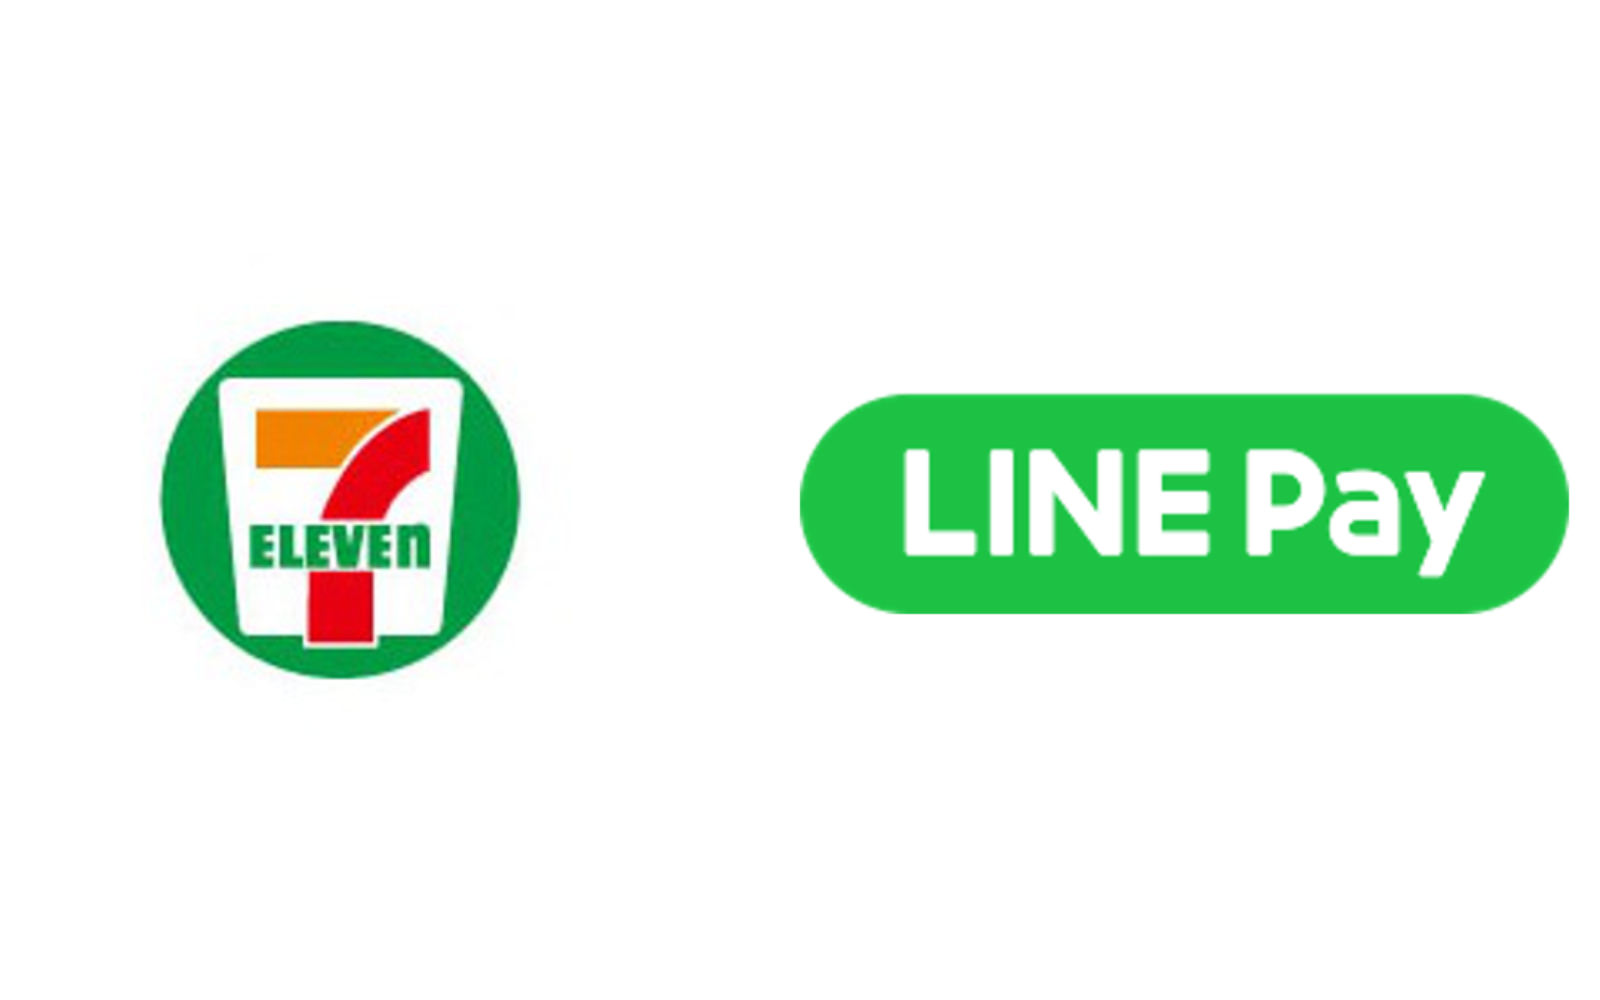 Seven Eleven and LINE Pay